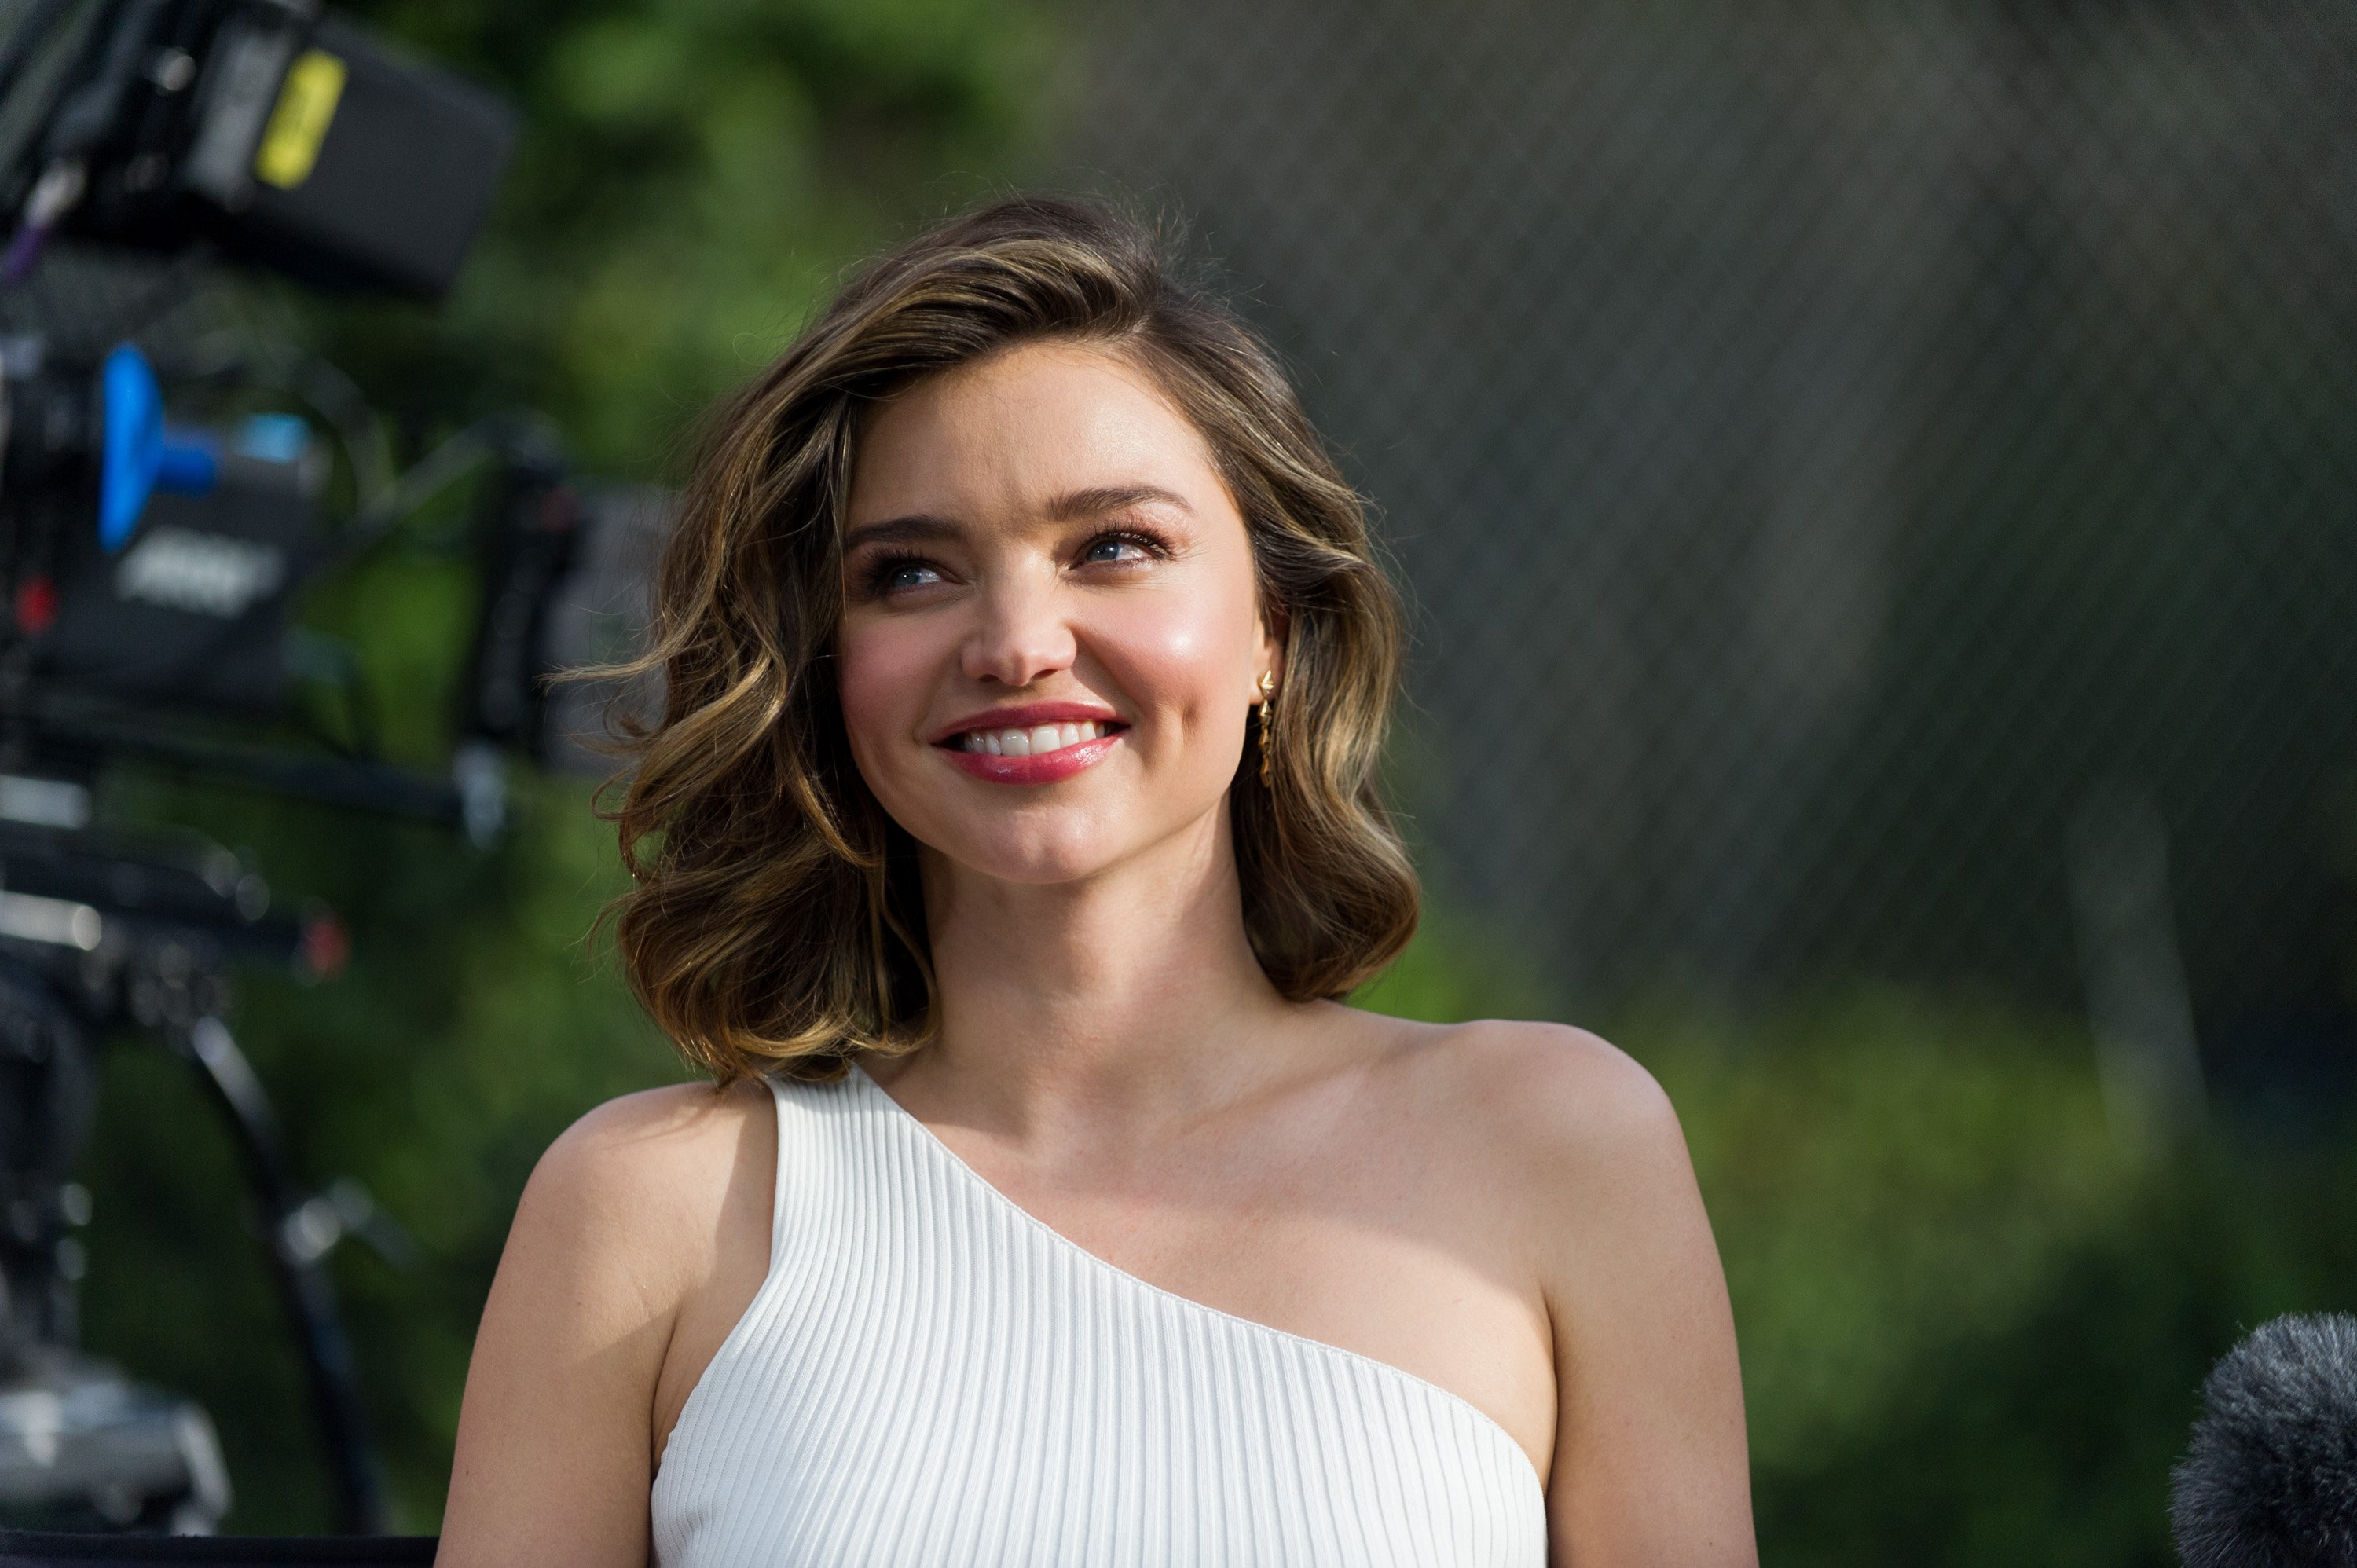 Miranda Kerr attends 'Buick Super Bowl ad' shooting on January 13, 2017, in Los Angeles, California. | Source: Getty Images.